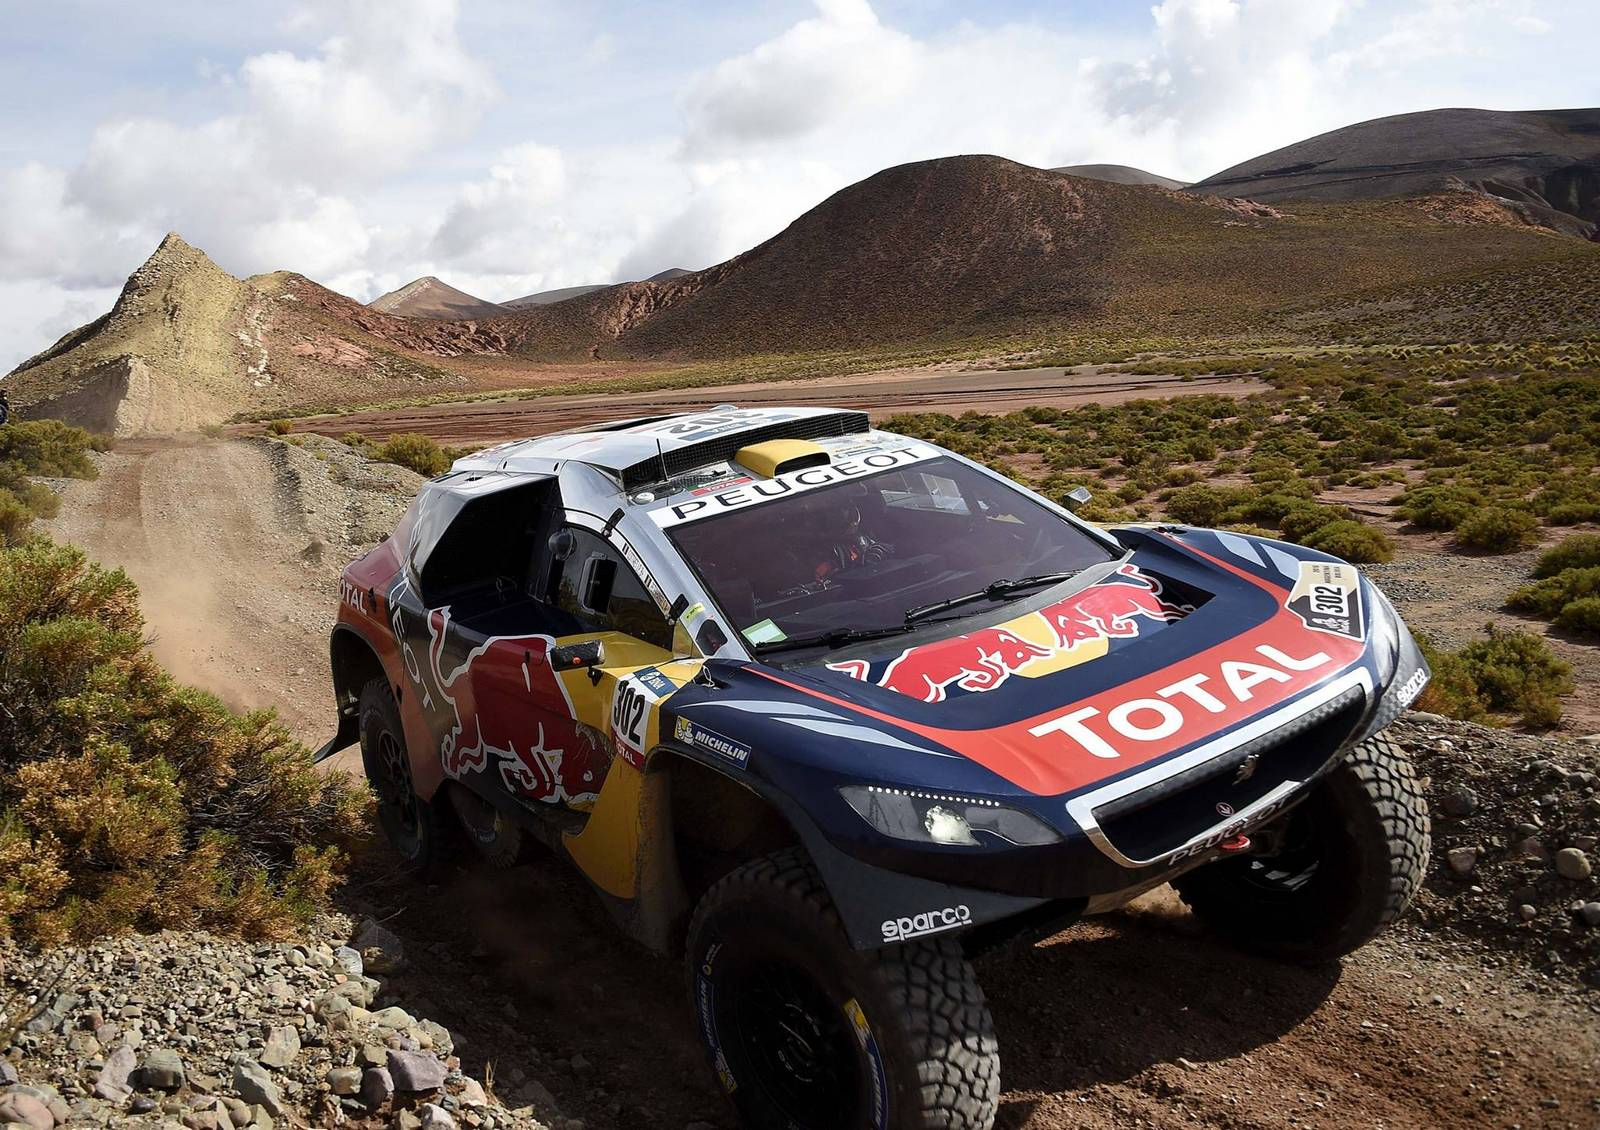 dakar rally 2016 peugeot dominates marathon stage in jujuy gtspirit. Black Bedroom Furniture Sets. Home Design Ideas